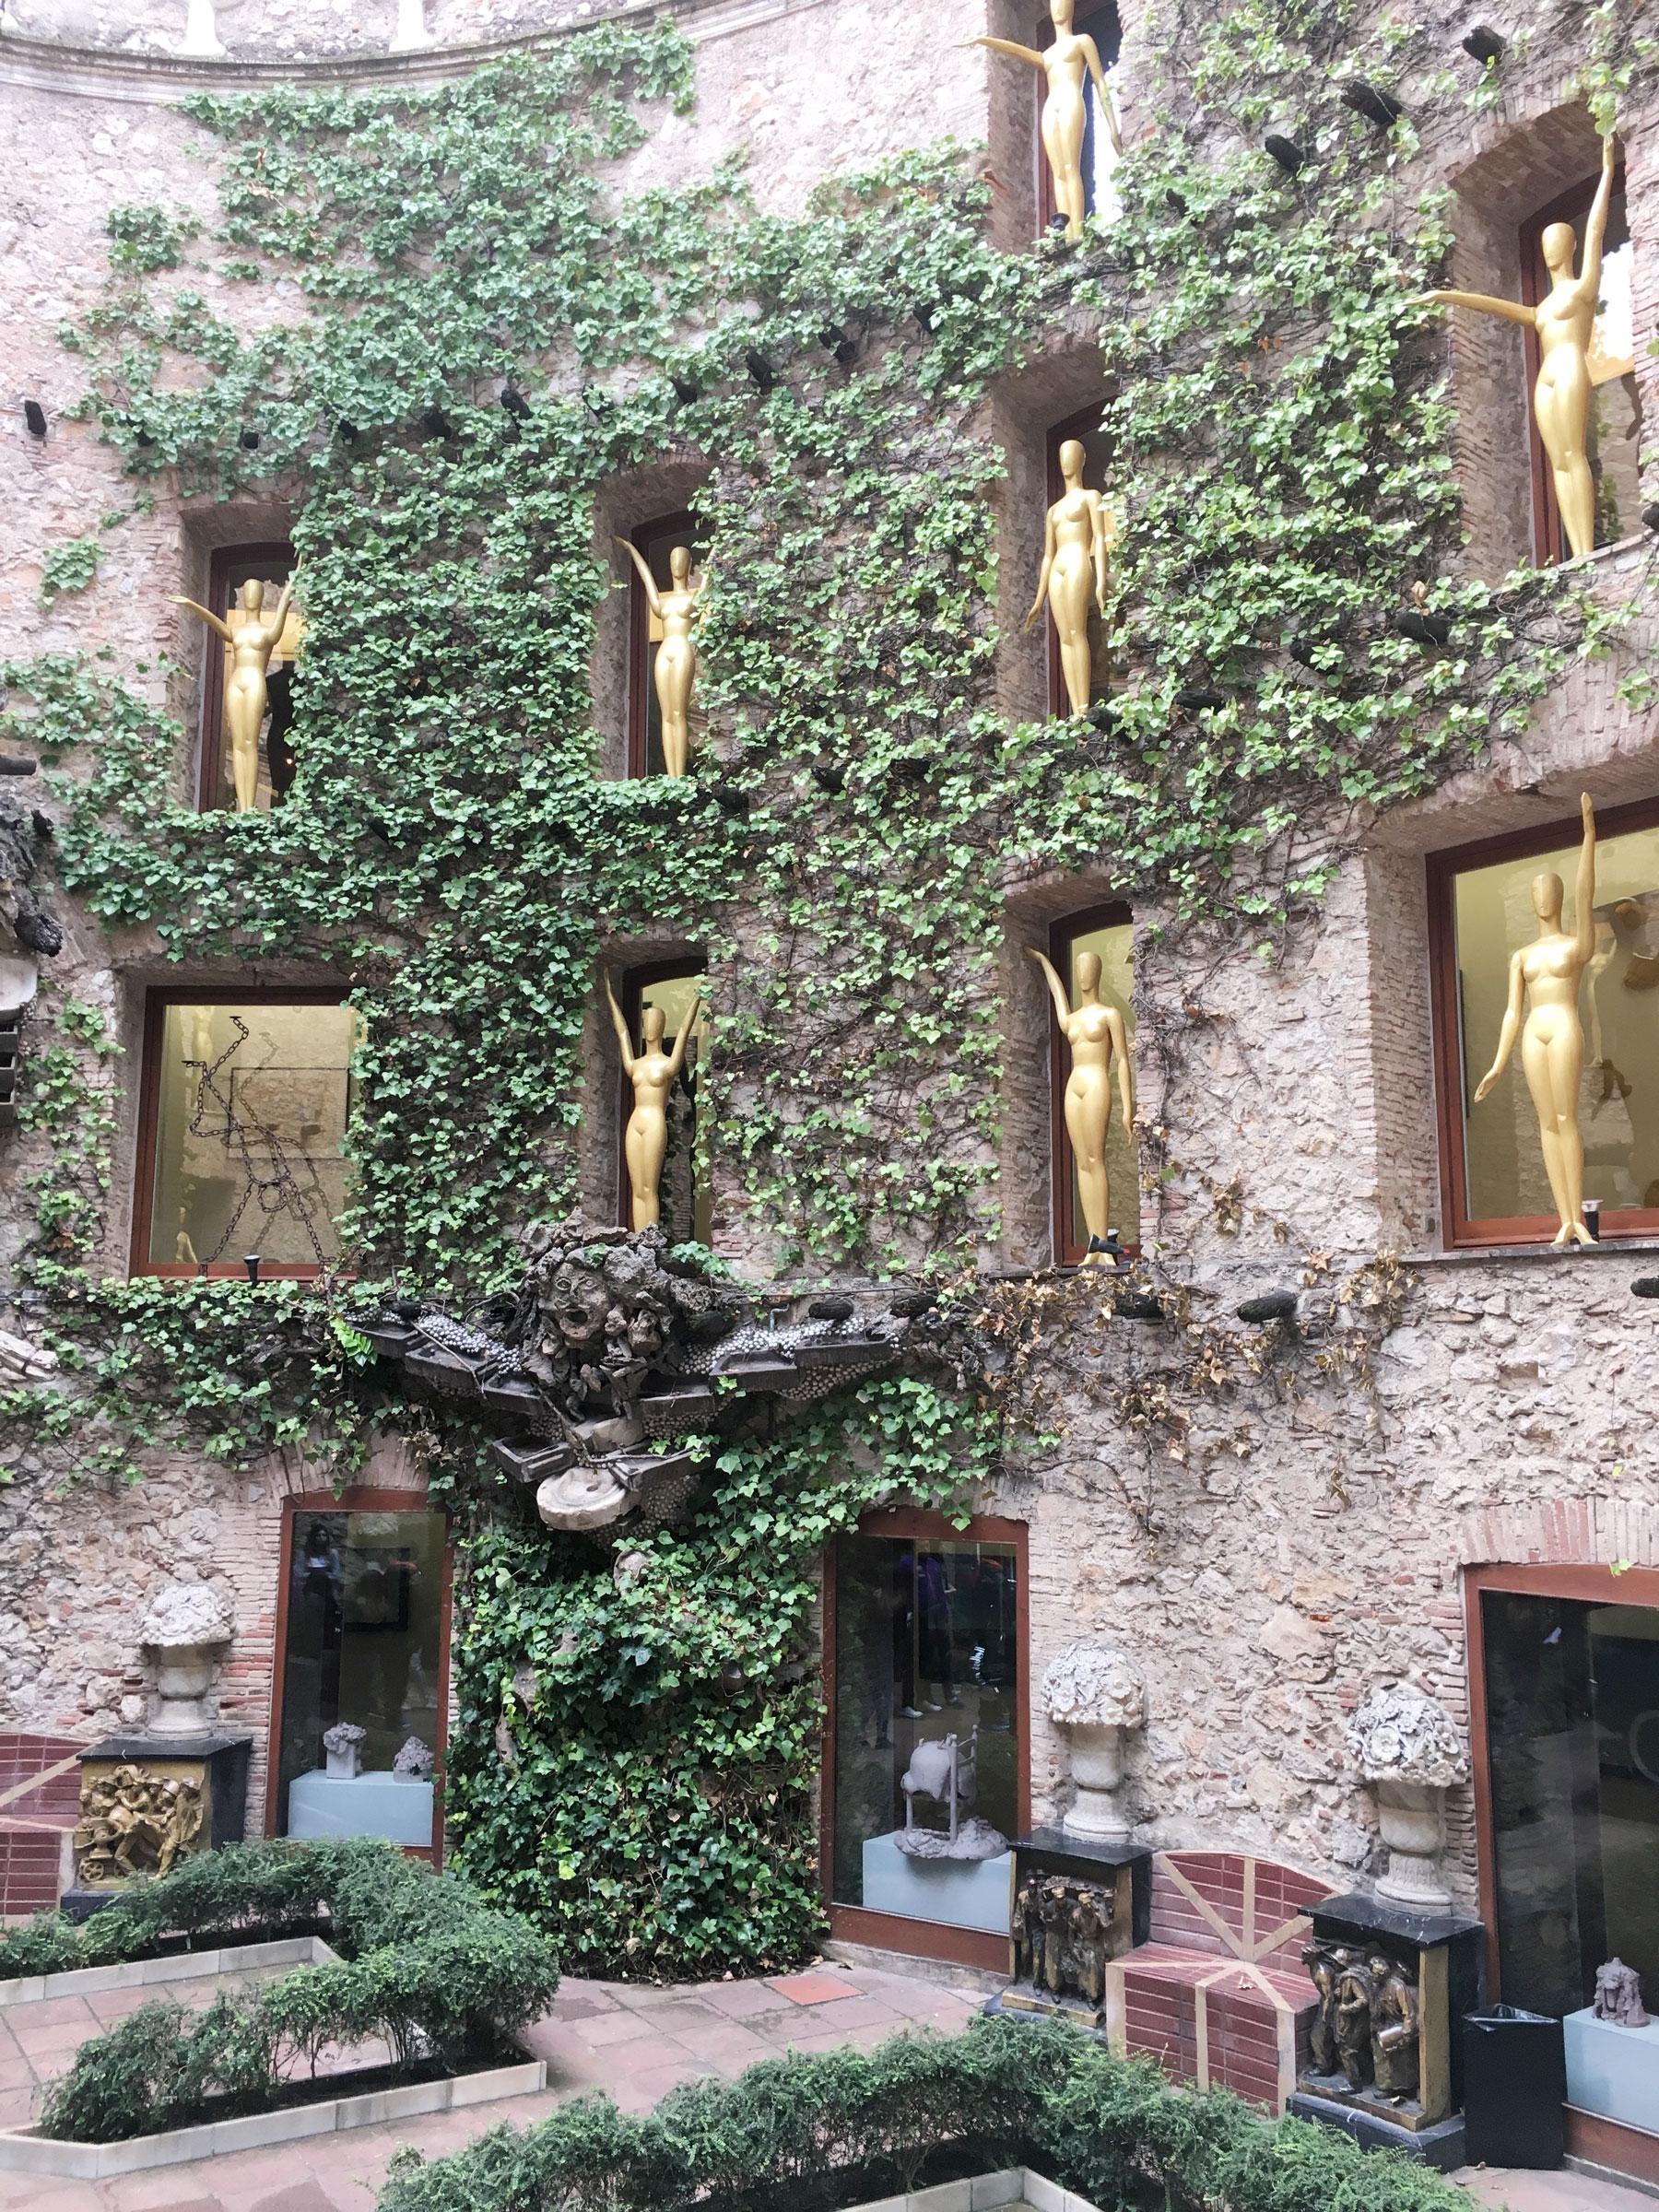 Central courtyard at the Dali Museum, Figueres. #daytripfrombarcelona